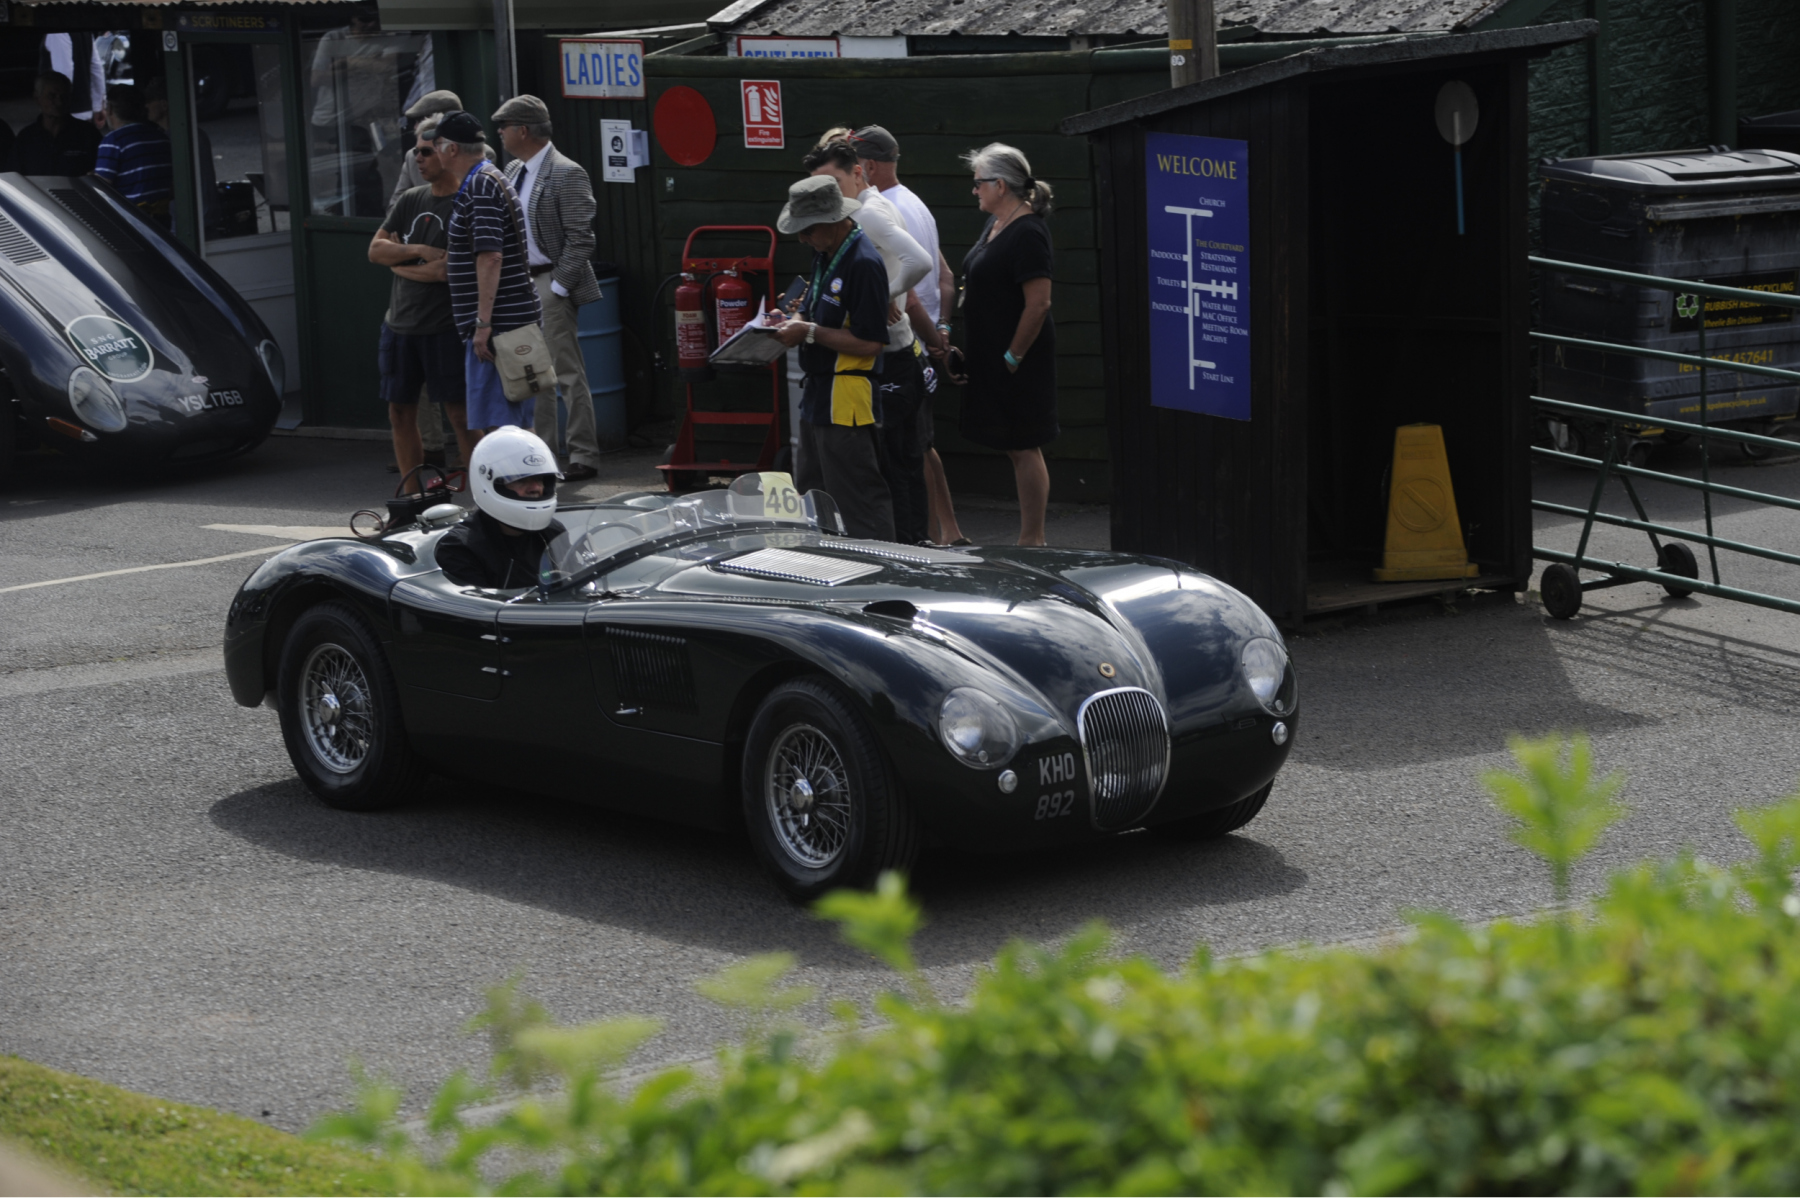 E-type-60-Saturday-photo-by-Abigail-Humphries-210